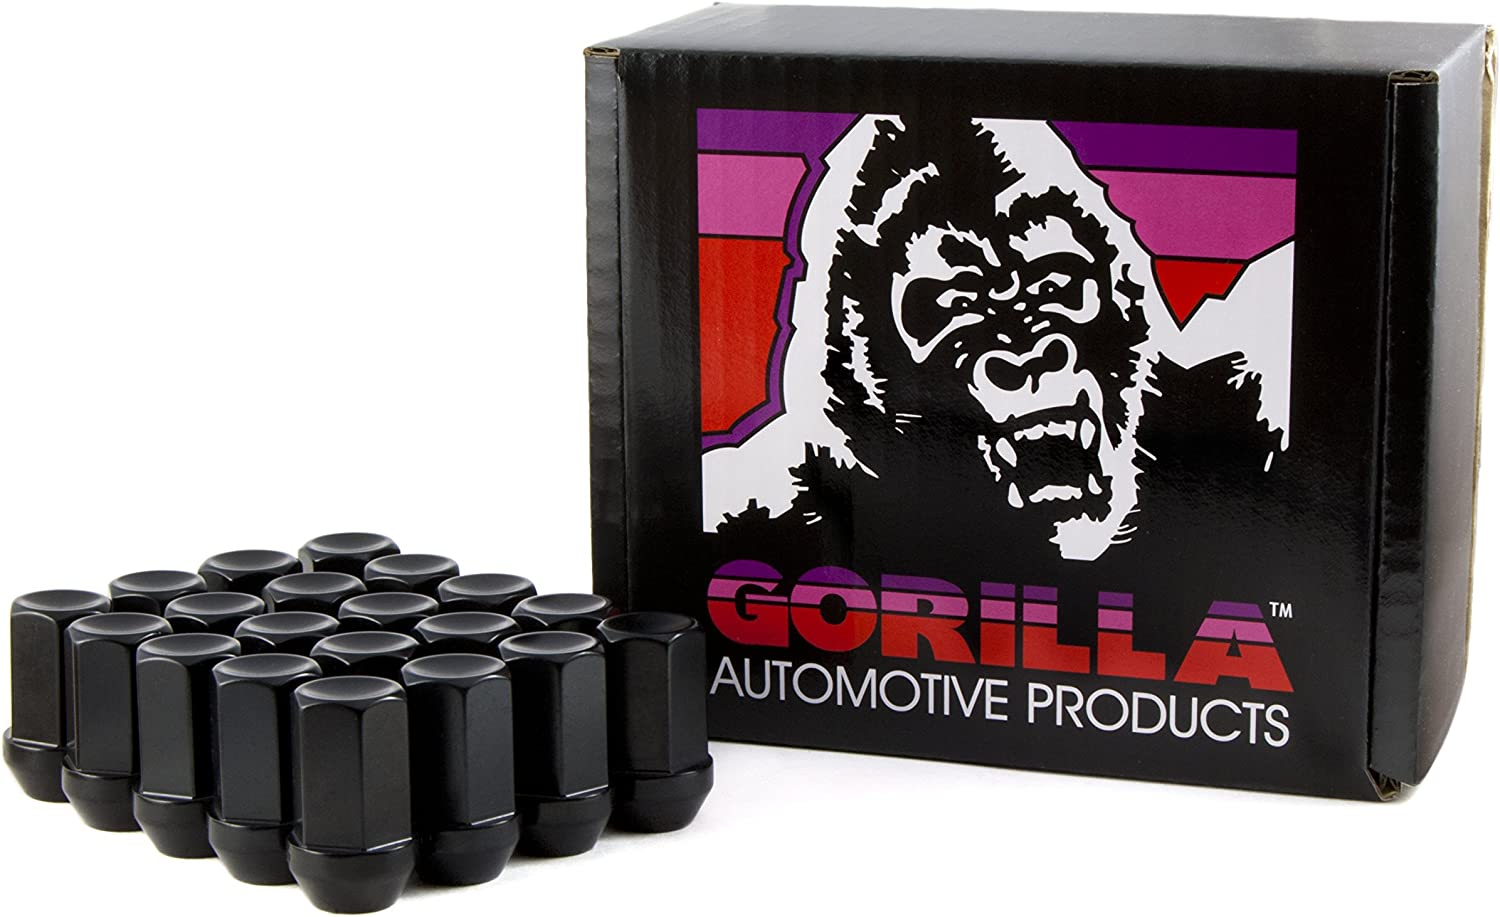 Pack of 20 Gorilla Automotive 45088-20 1//2 Thread Size Forged Steel Chrome Finish Open End Lug Nut,